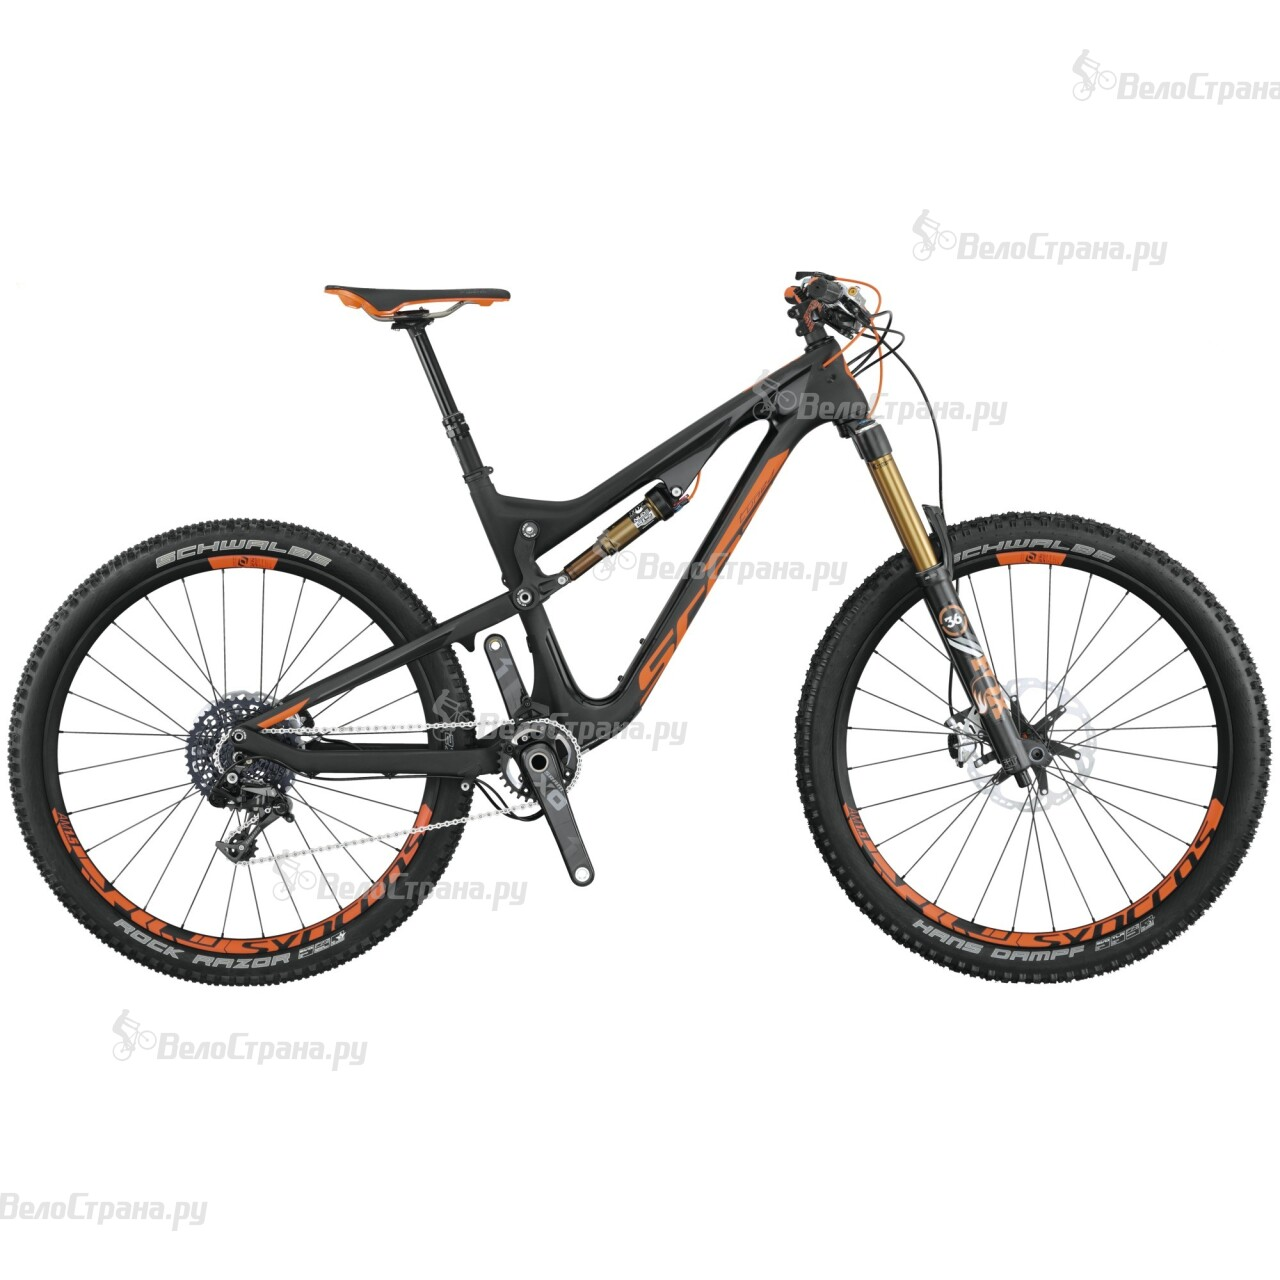 Велосипед Scott Genius LT 700 Tuned (2015)  велосипед scott contessa genius 700 2015